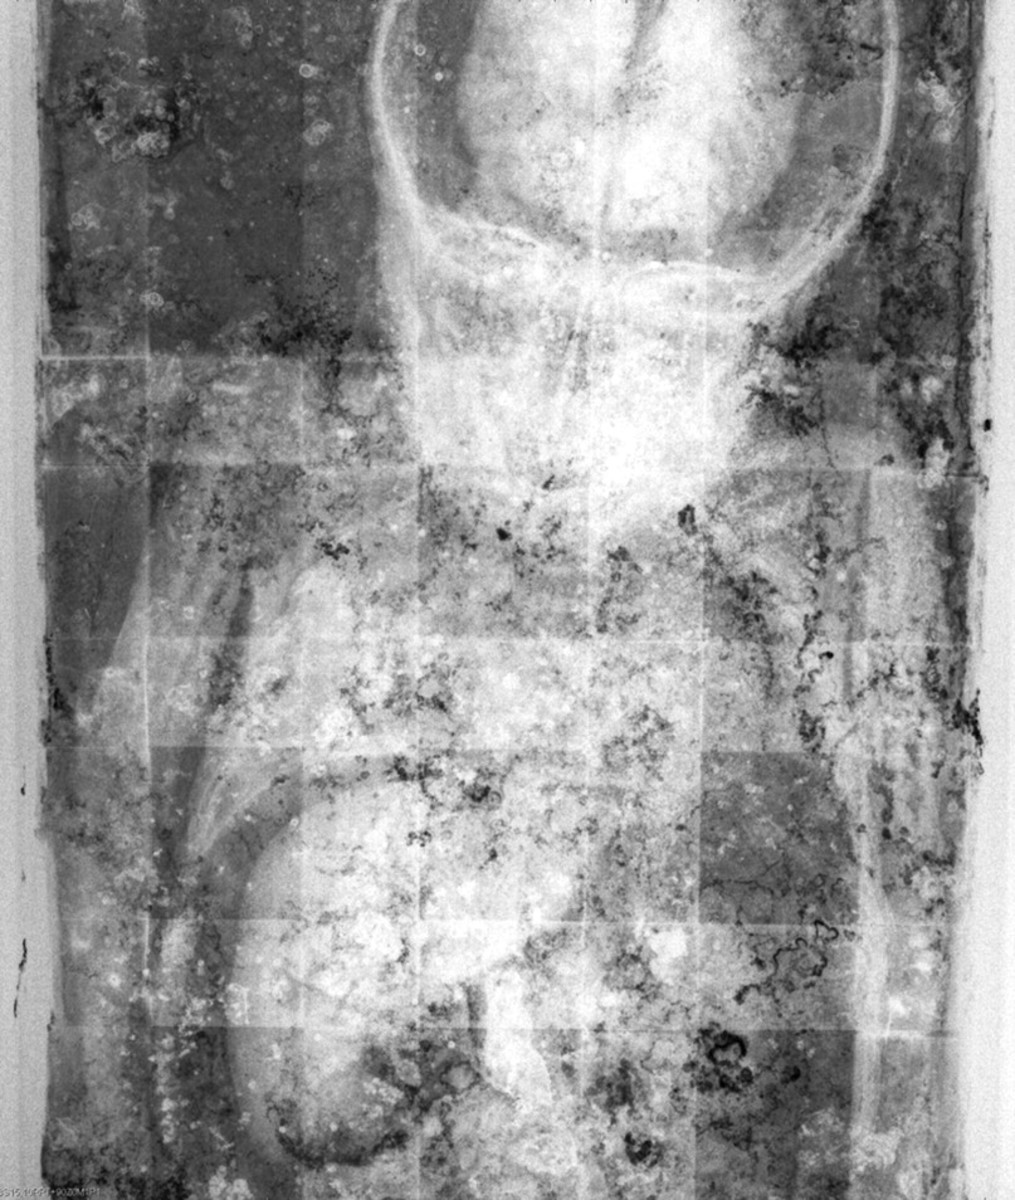 The x-ray of Rosalia showing her brain and liver intact. The grid is of the coffin beneath the body.